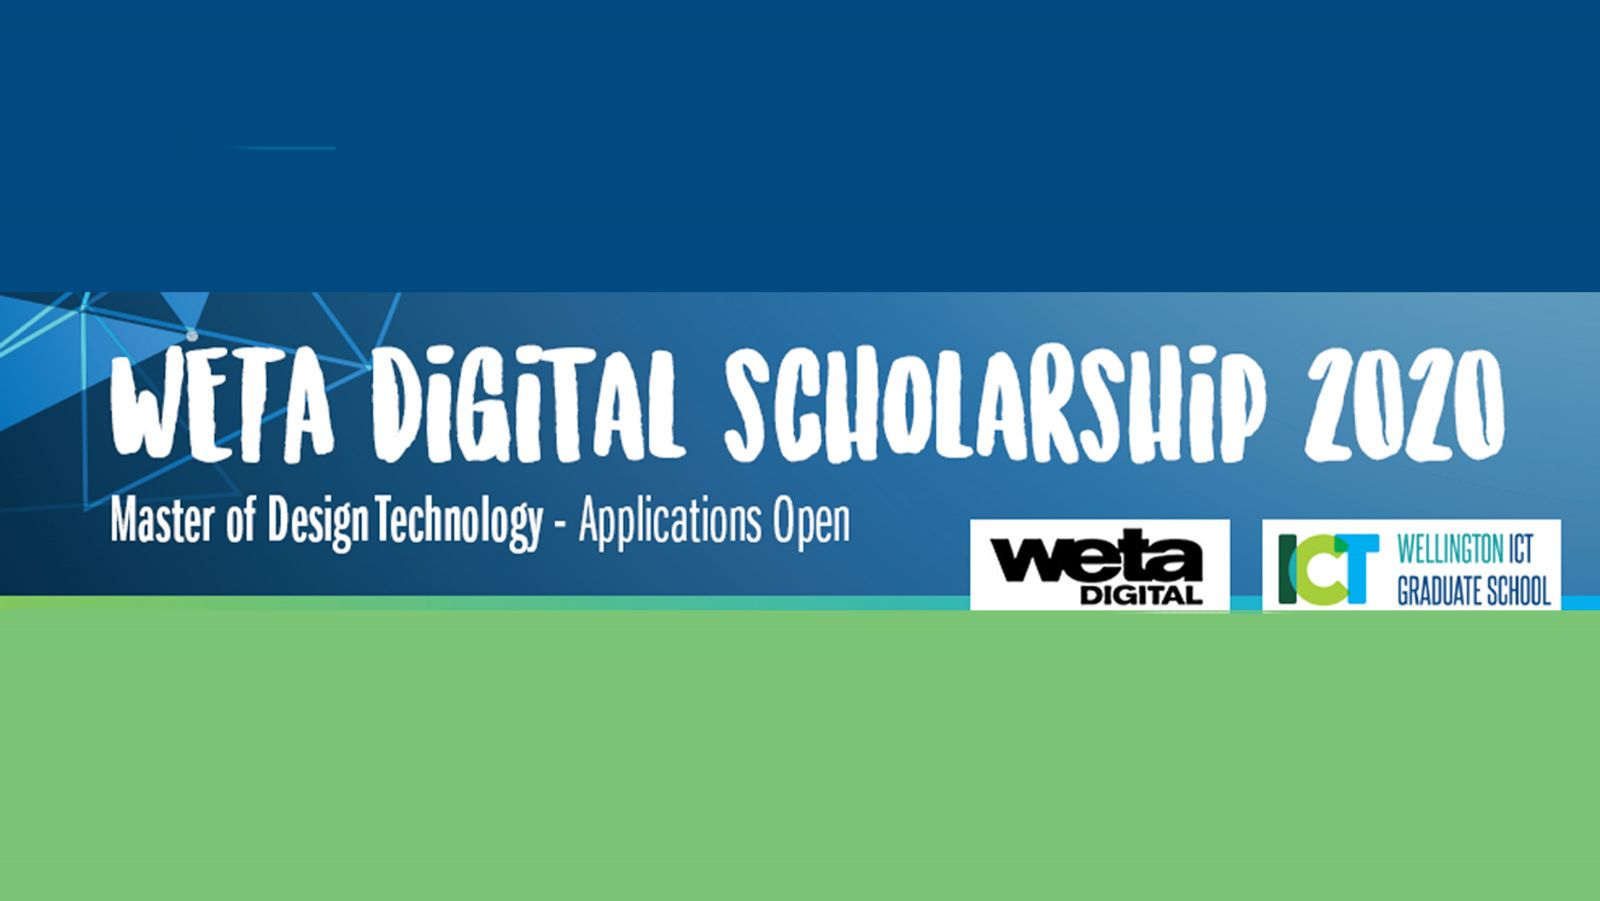 Weta Digital Scholarship image